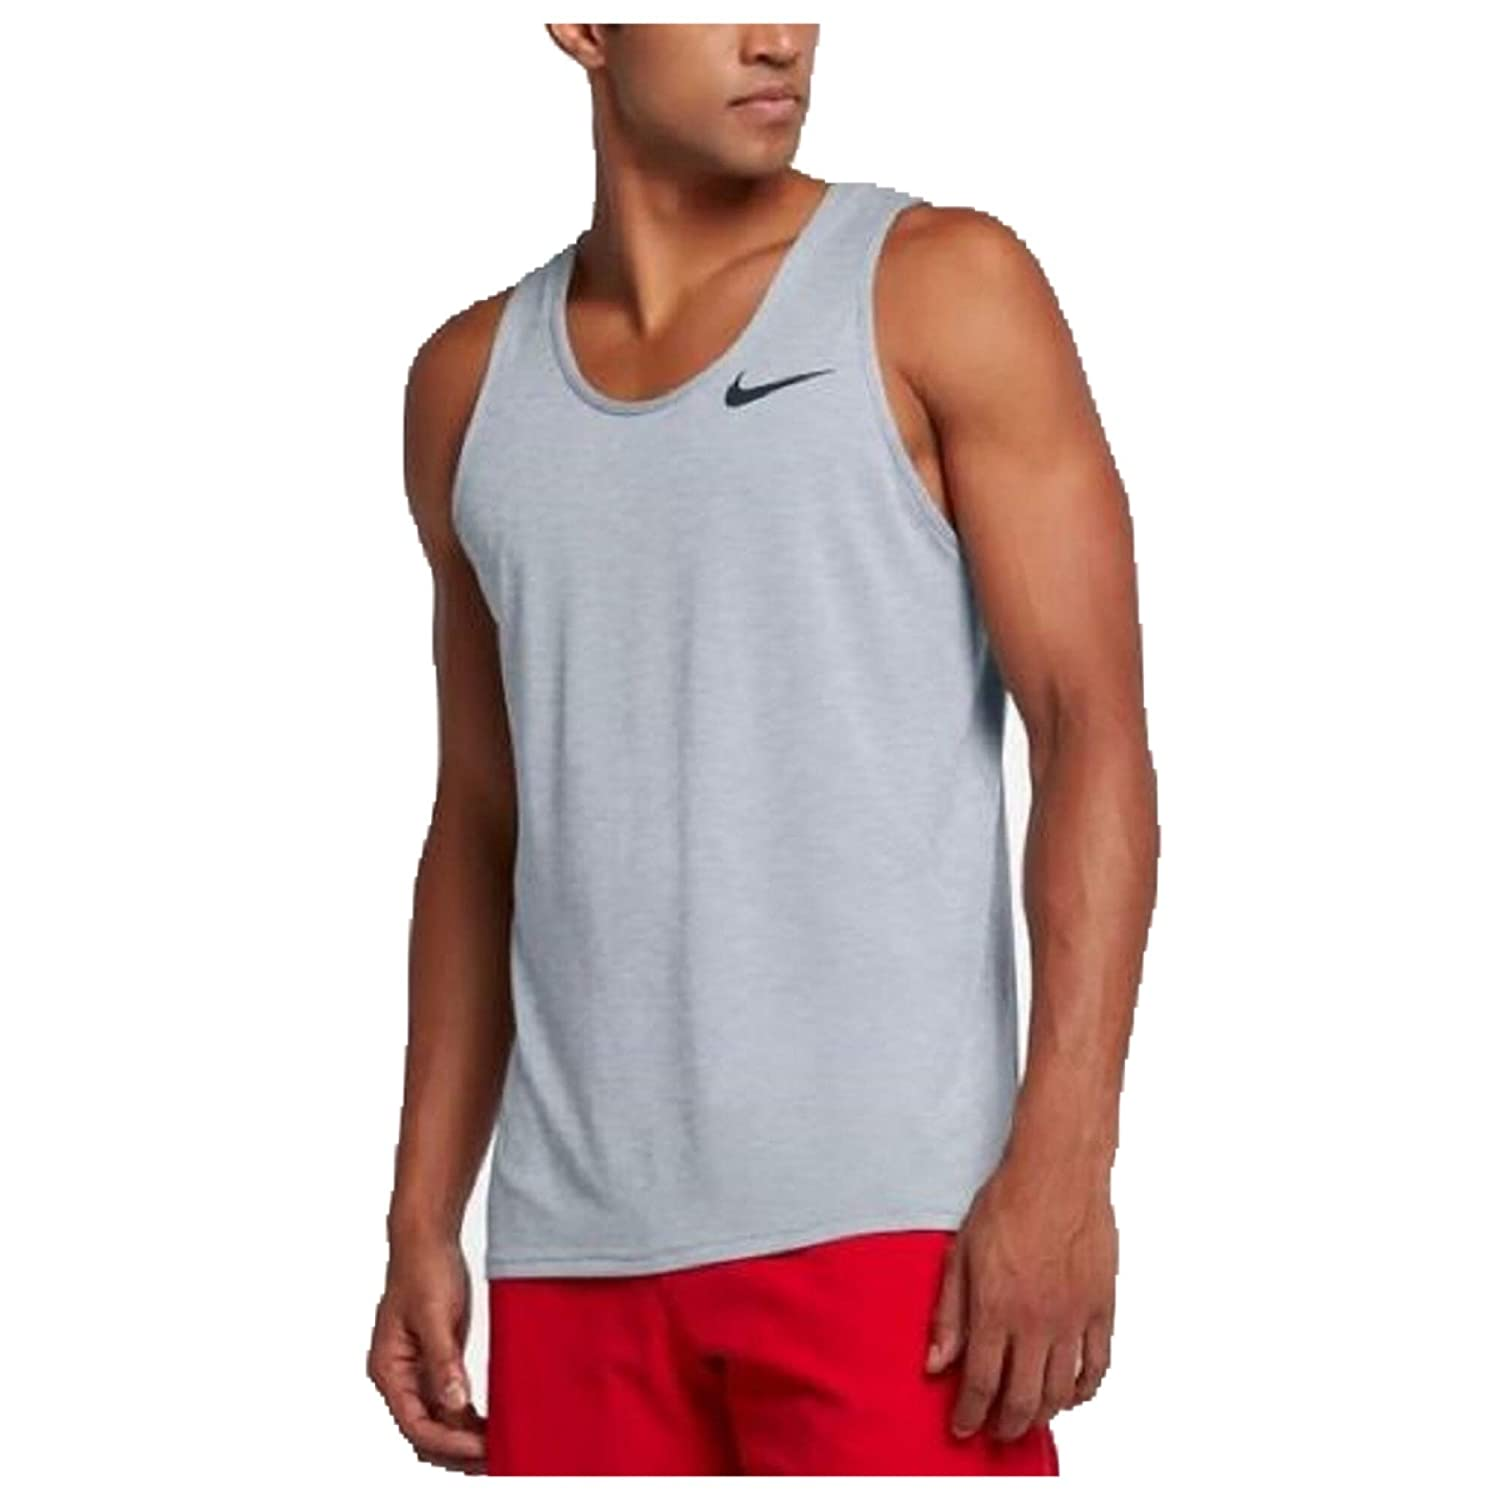 incredible prices 2019 original select for latest Nike DRI-FIT Men's Breathe Training Tank Top Light Grey/Black